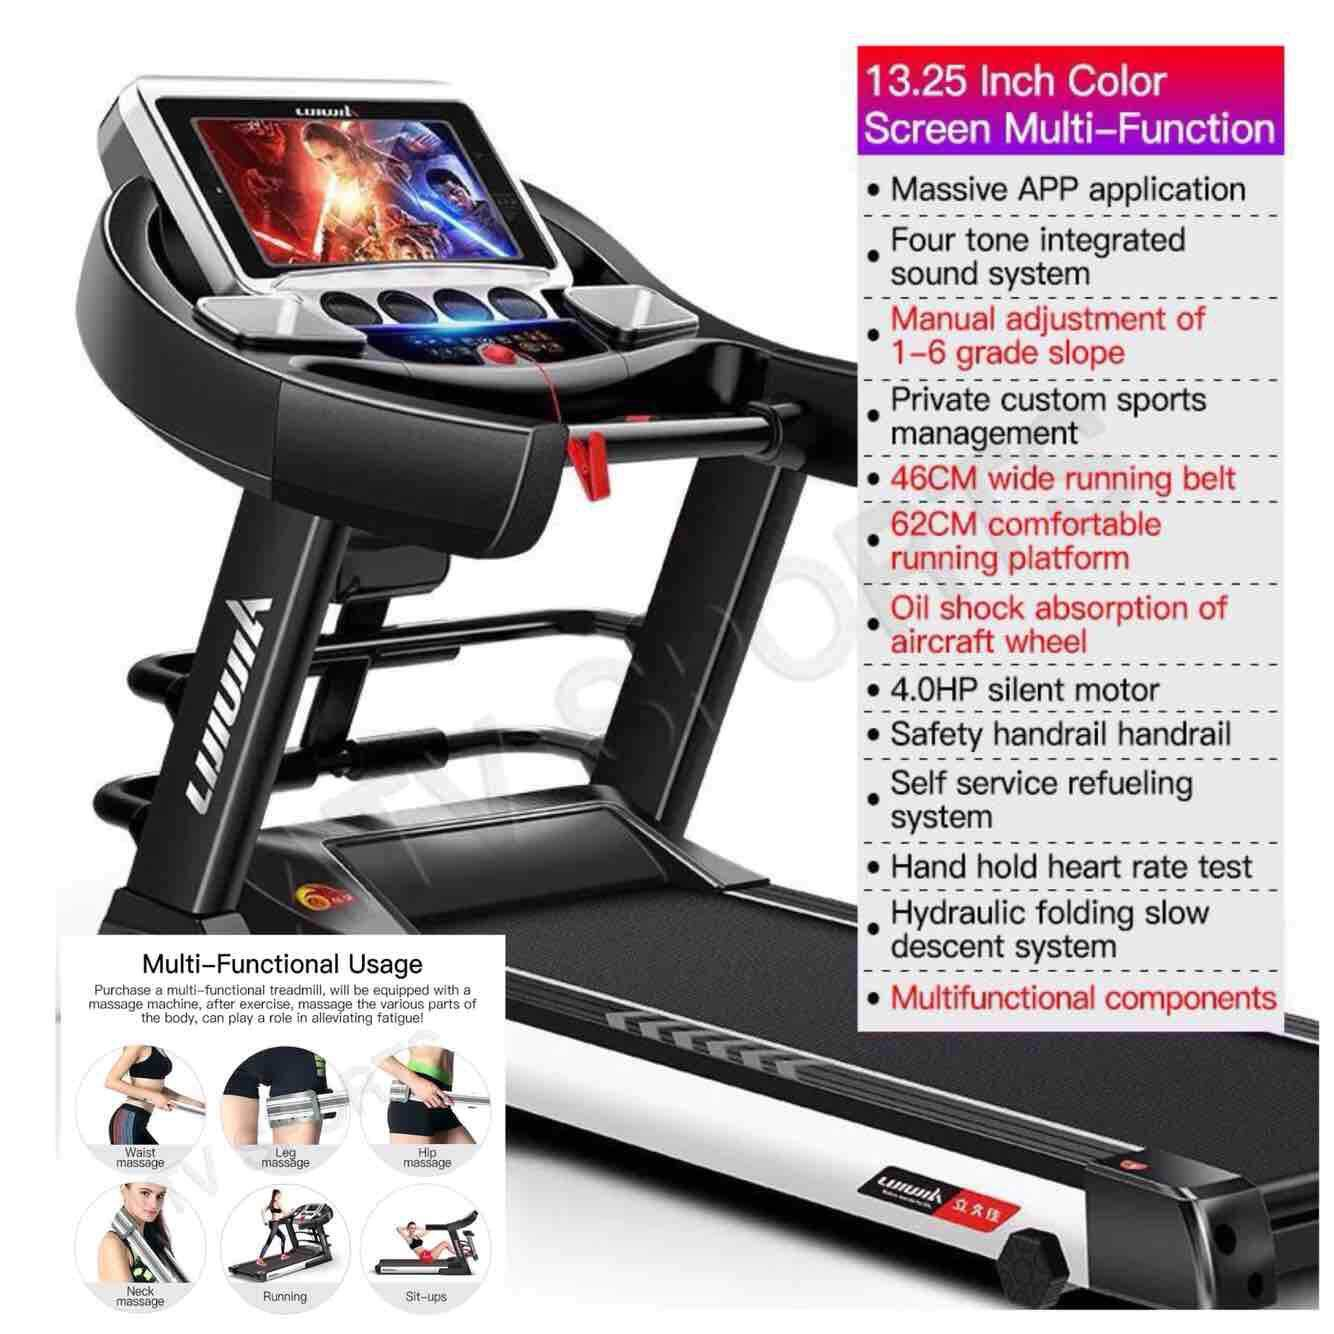 Lightning Send-Lijiujia Multifunction Treadmill 13.25inch Colour Screen 1-6 Grade Runway Lifting - 1 Year Warranty By Atv Sports And Style Sdn Bhd.